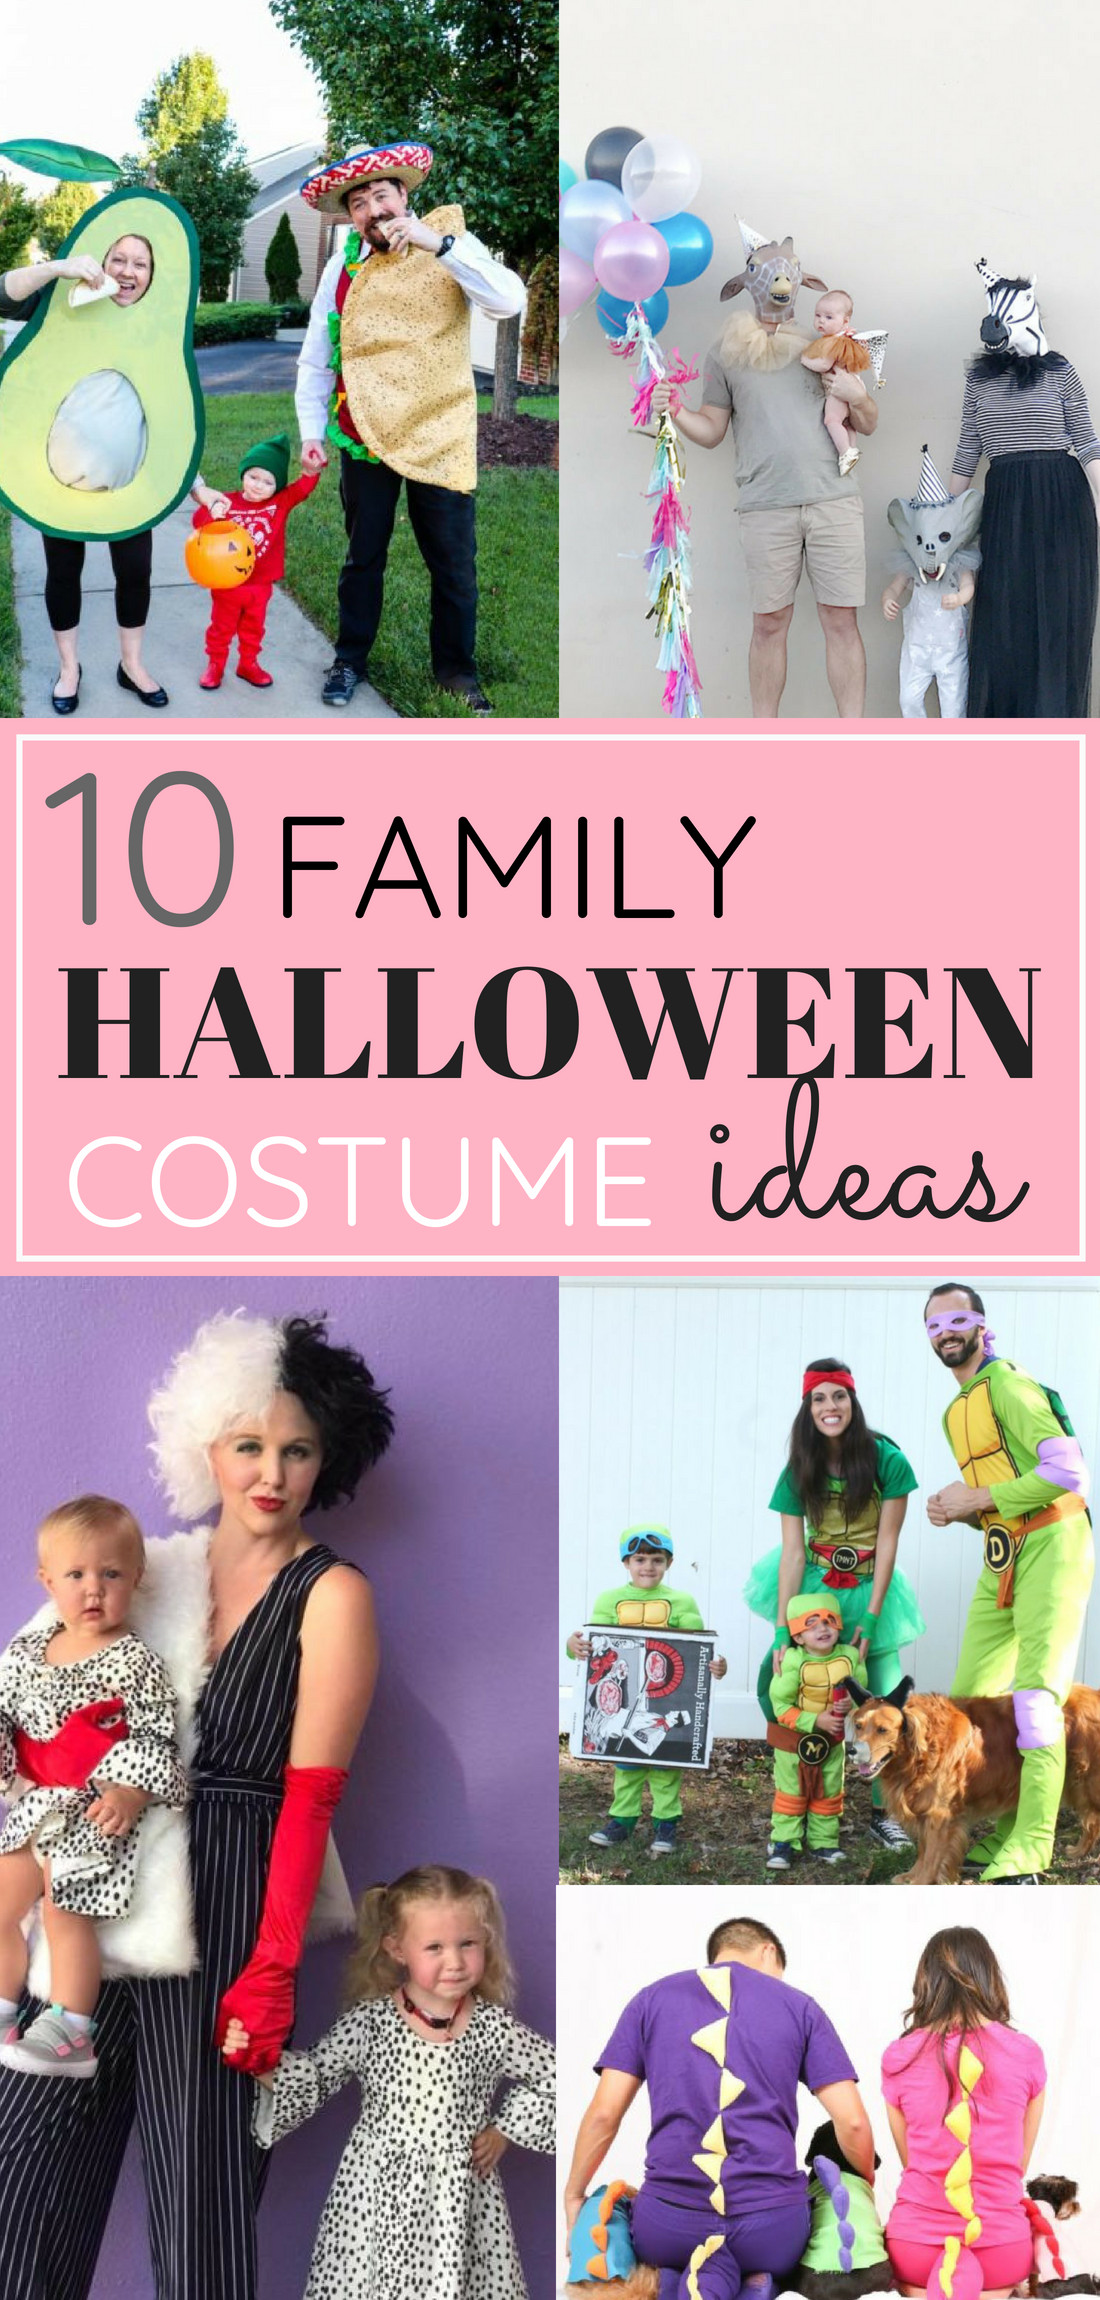 Looking for the perfect family costume? 10 bloggers share their favorite adorably awesome Halloween costumes for families, kids, babies, even pets. Click through for plenty of fun DIY costumes for the whole family. #halloween #halloweencostumeideas #familyhalloweencostume #familyhalloweencostumeideas #diycostumes #diyhalloween | glitterinc.com | @glitterinc